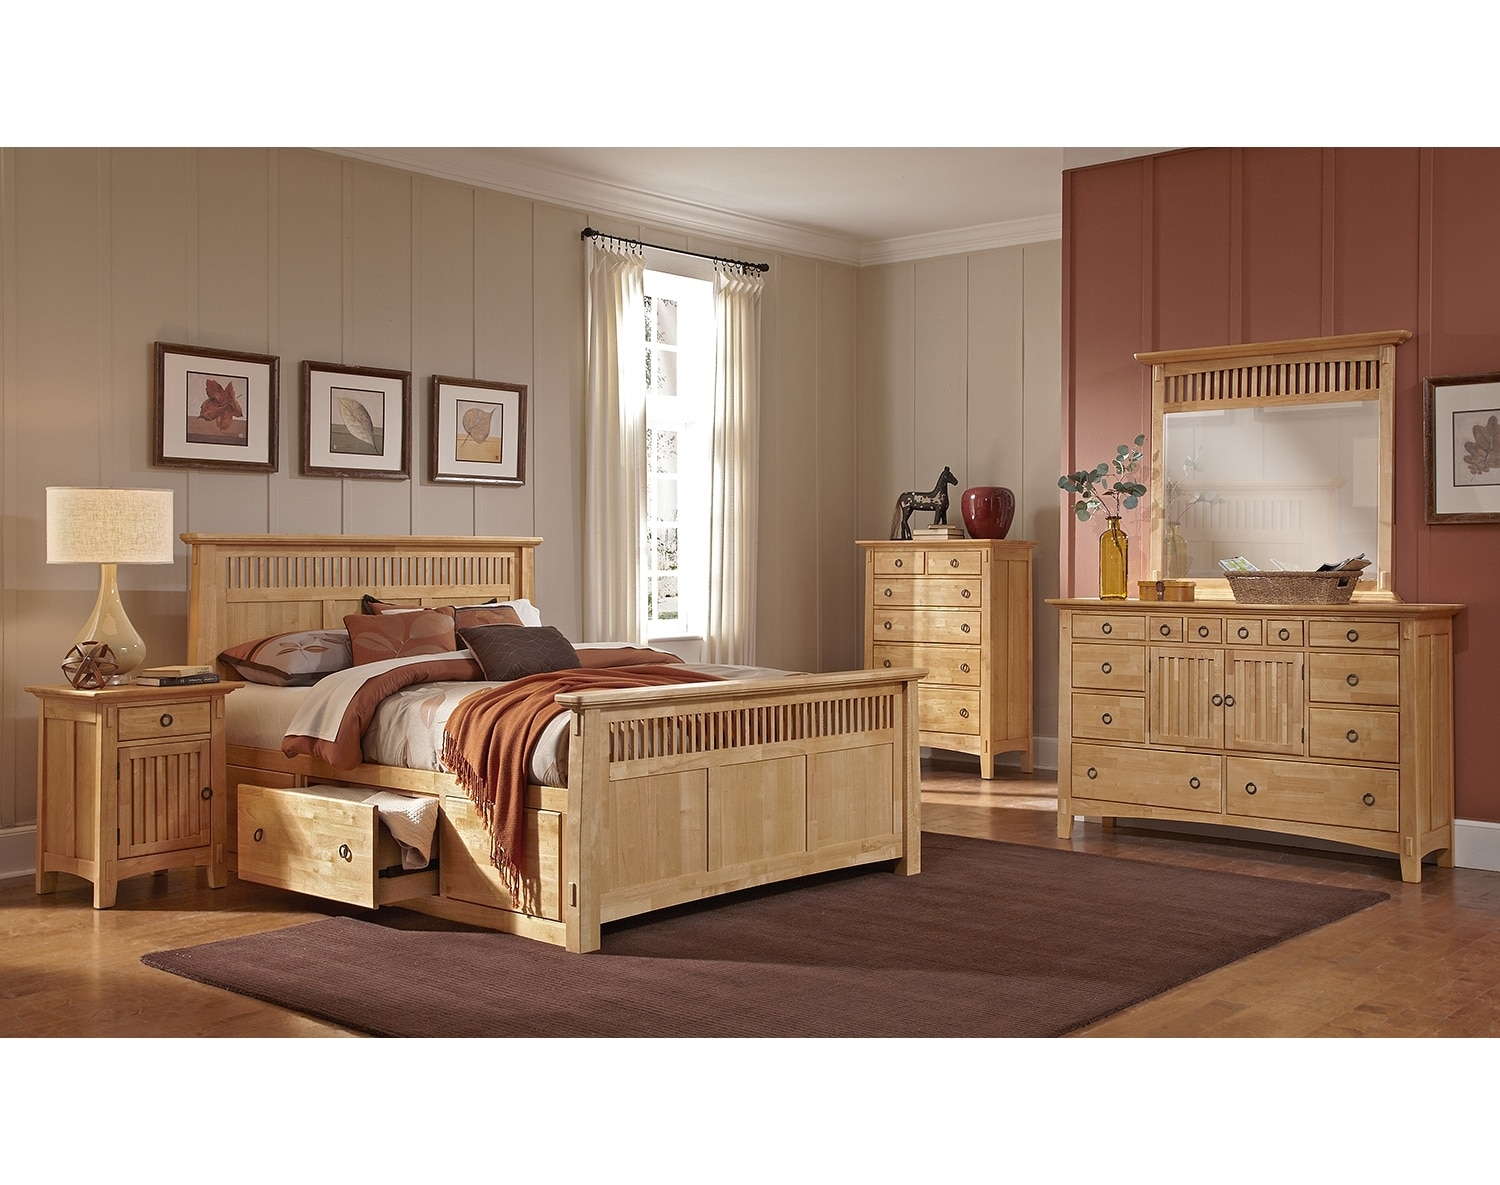 Bedroom Furniture - The Wentworth Light Storage Collection - Queen Storage Bed